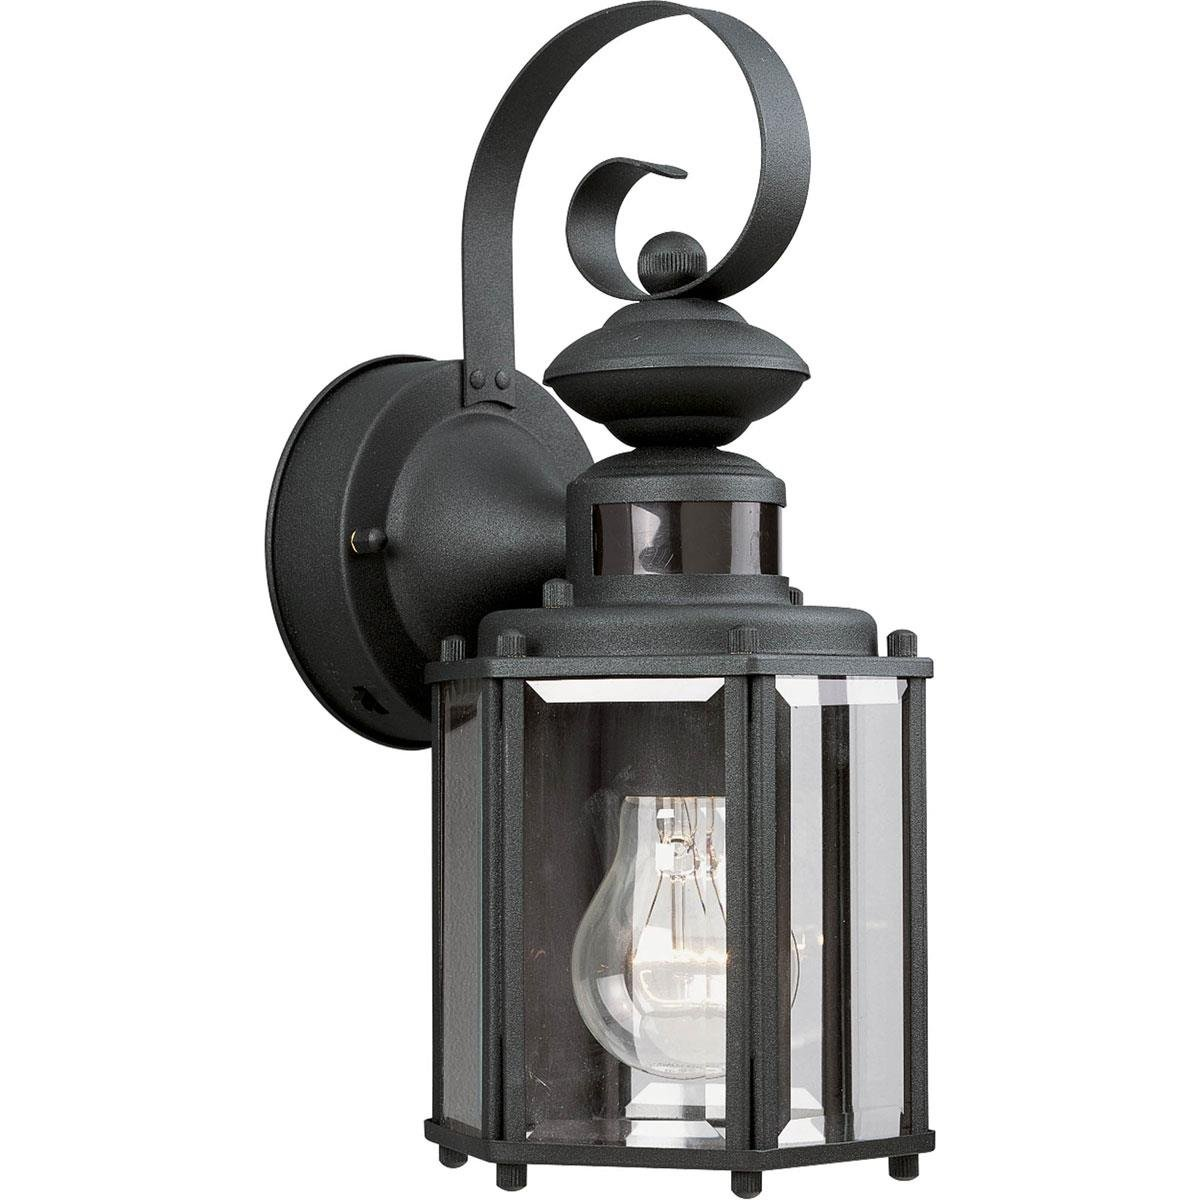 Black Motion Sensor Outdoor Wall Lantern - - Amazon.com